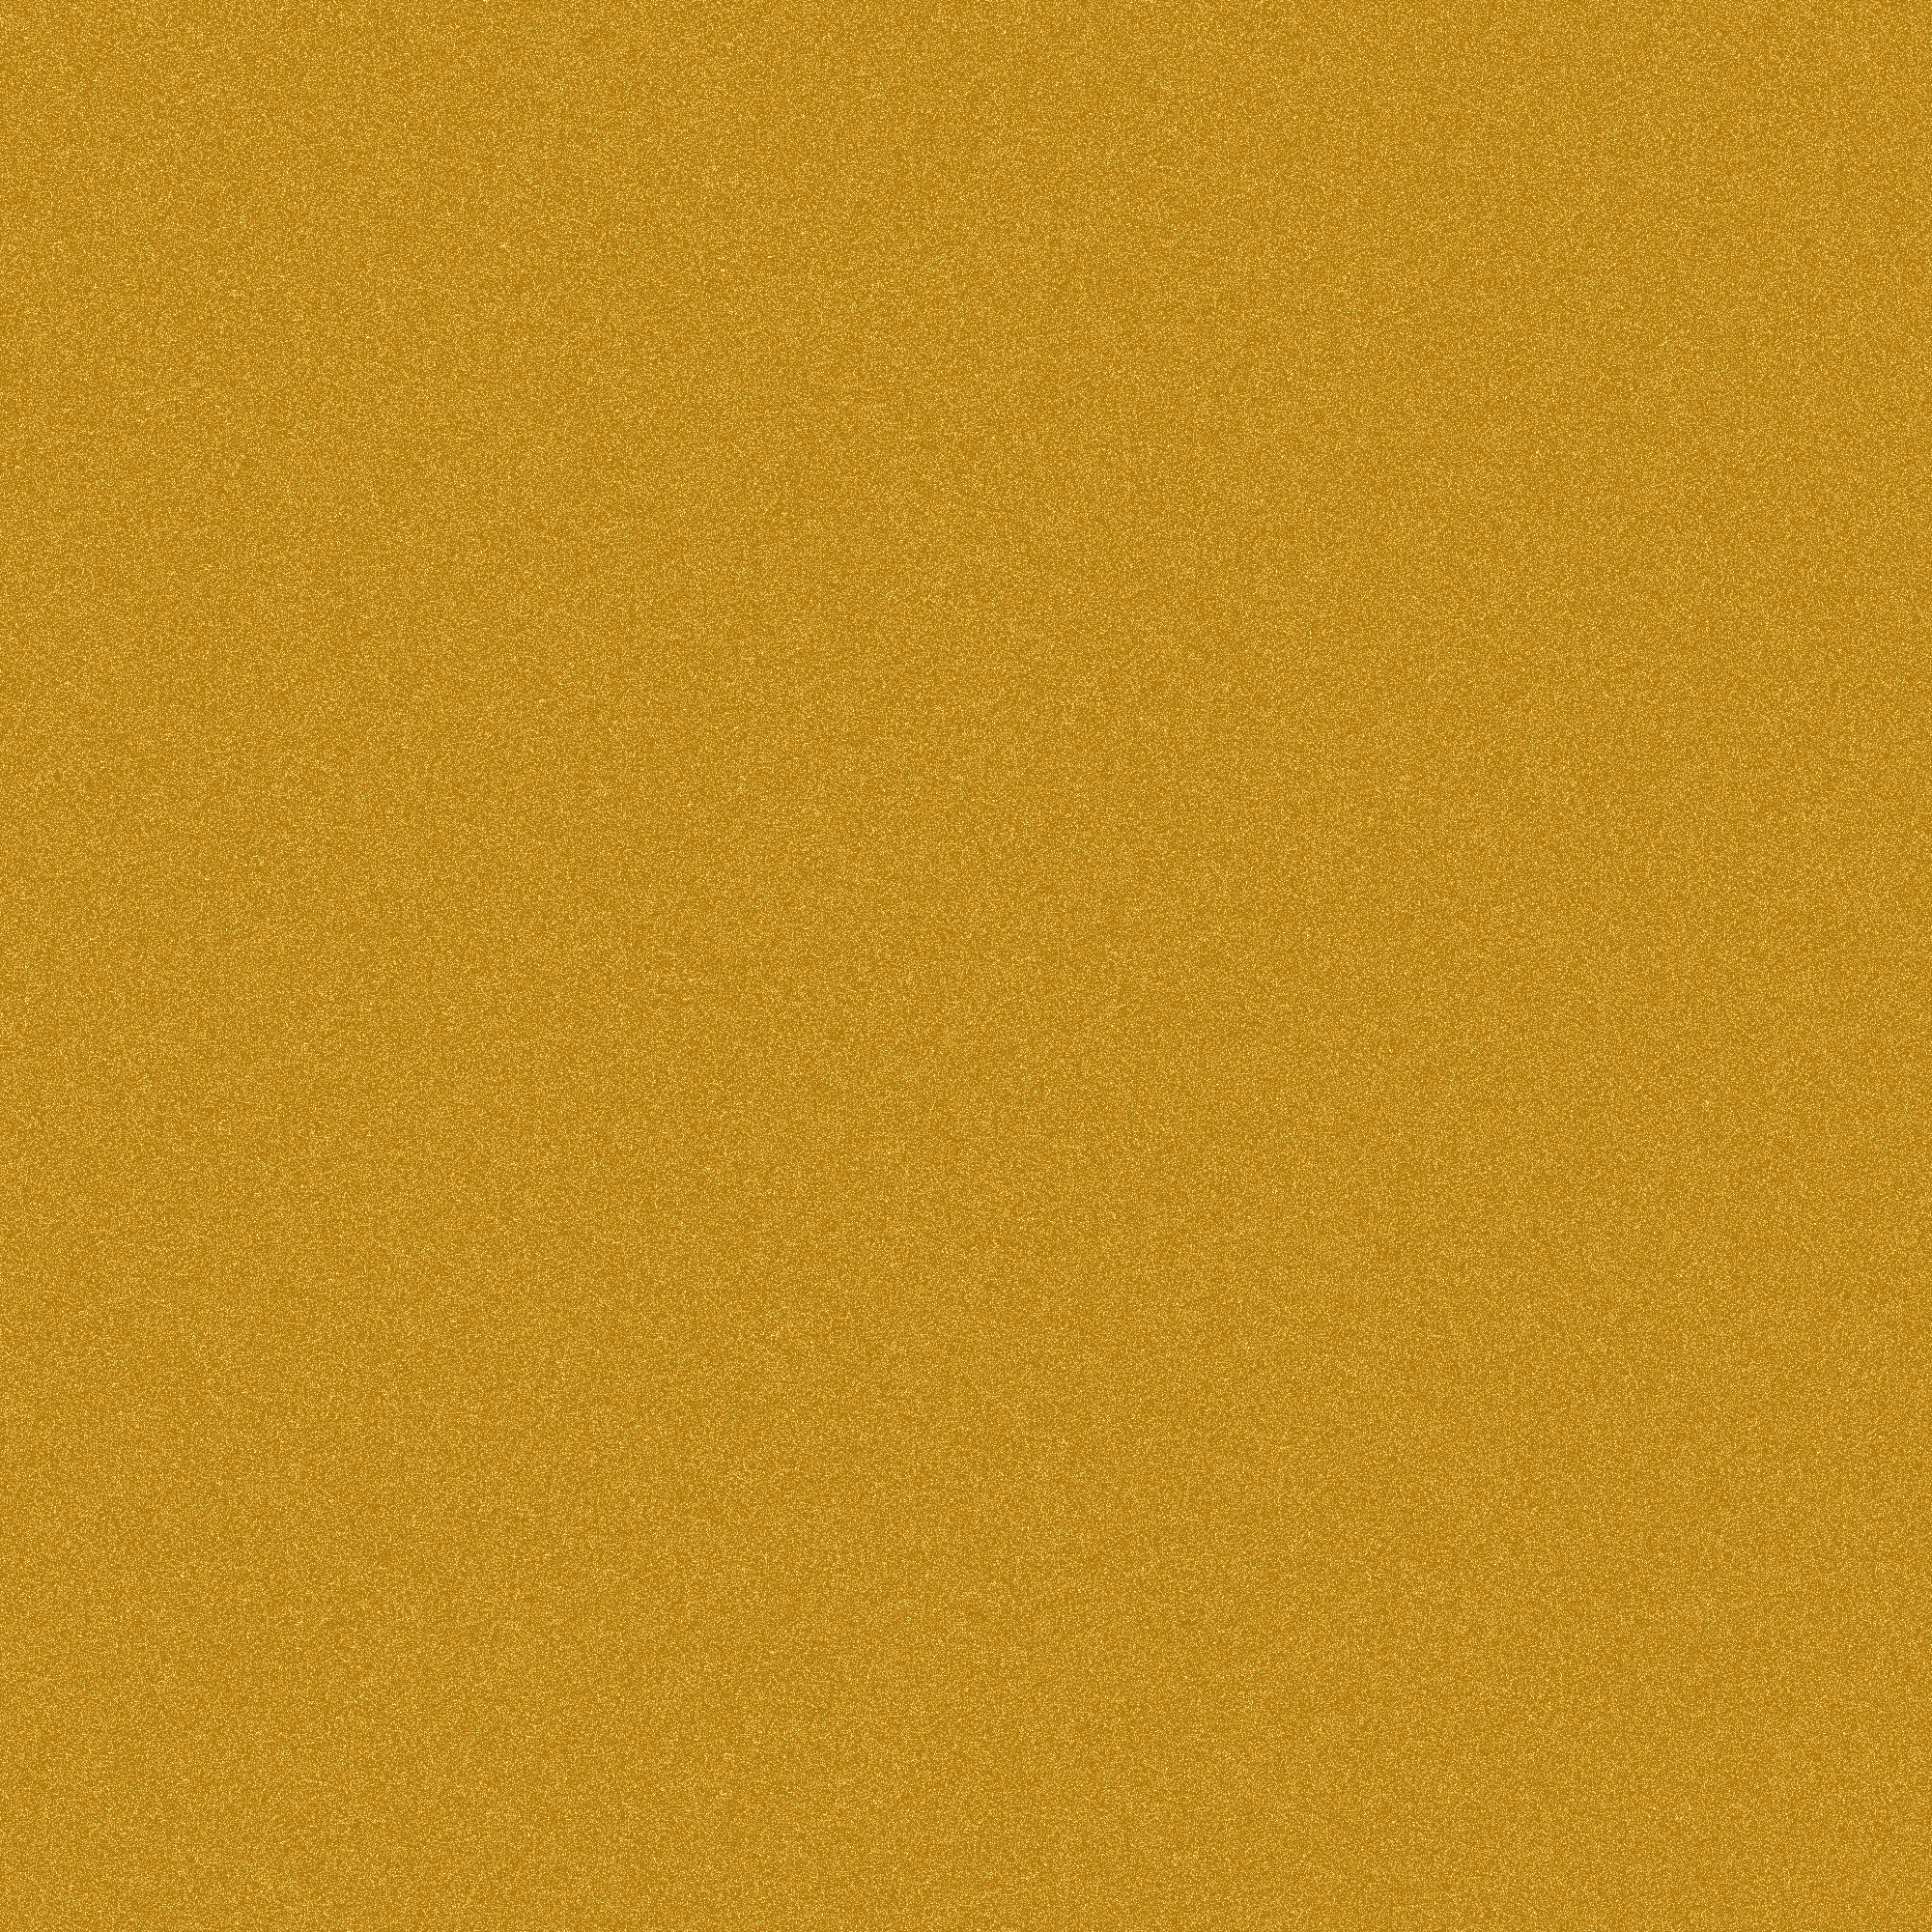 noize_background_gold